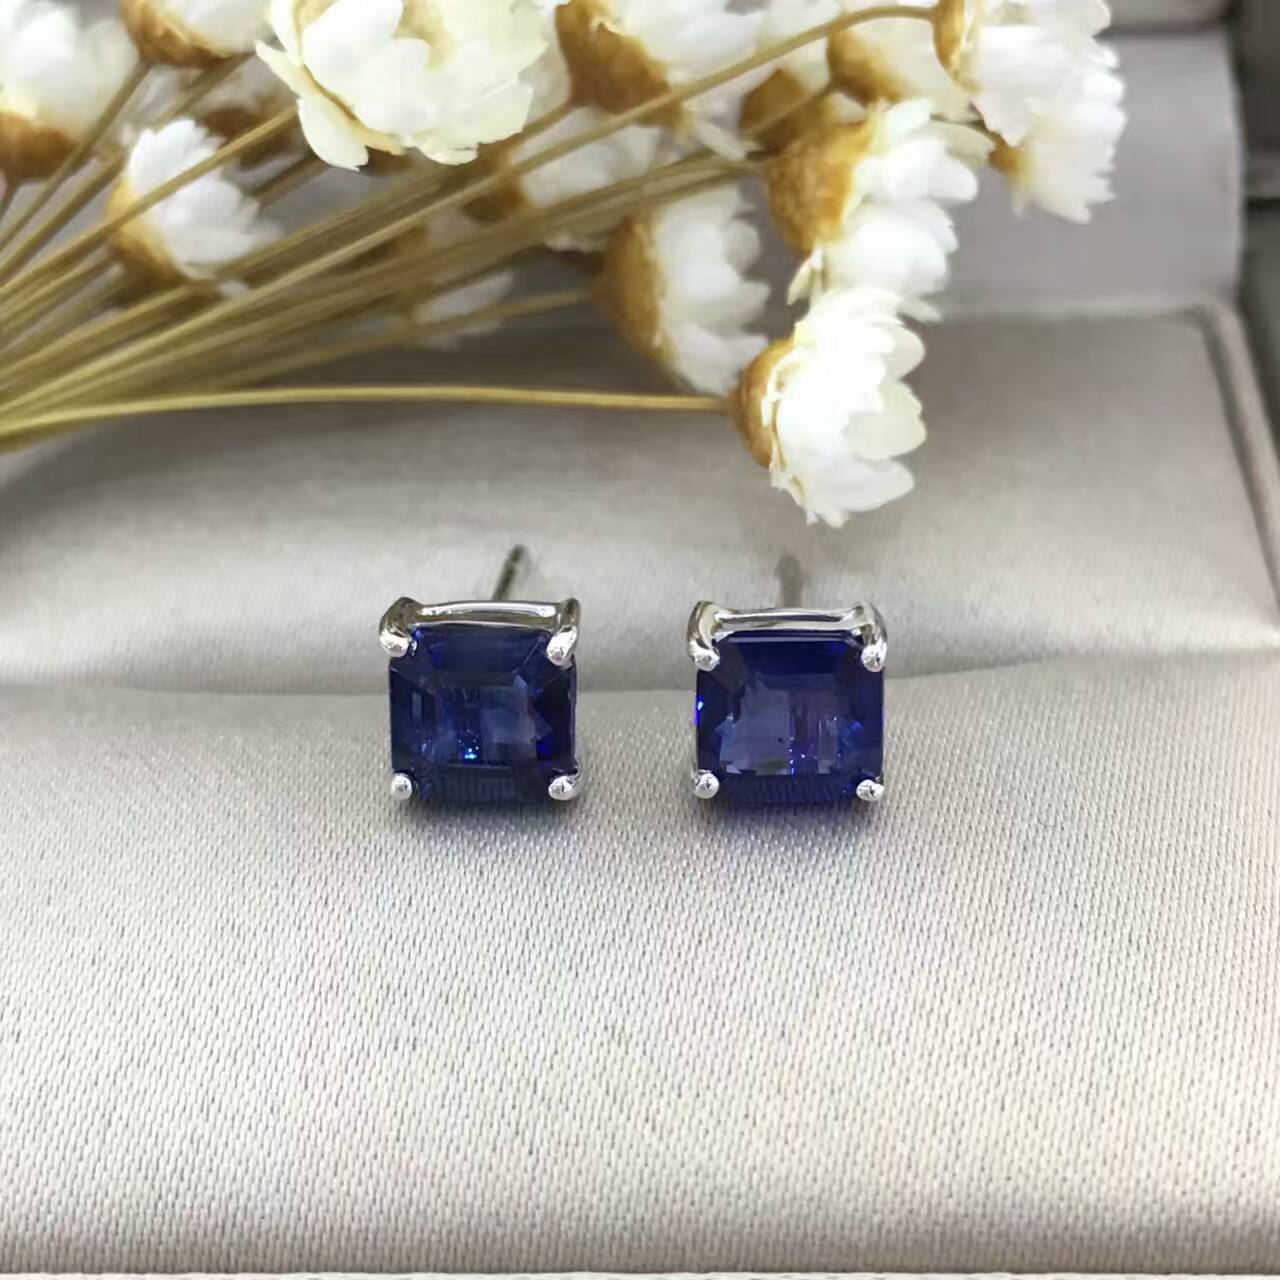 18K Gold 2.038ct Natural Sapphire Stud Earrings for Women Diamond Encrusted Free Shipping